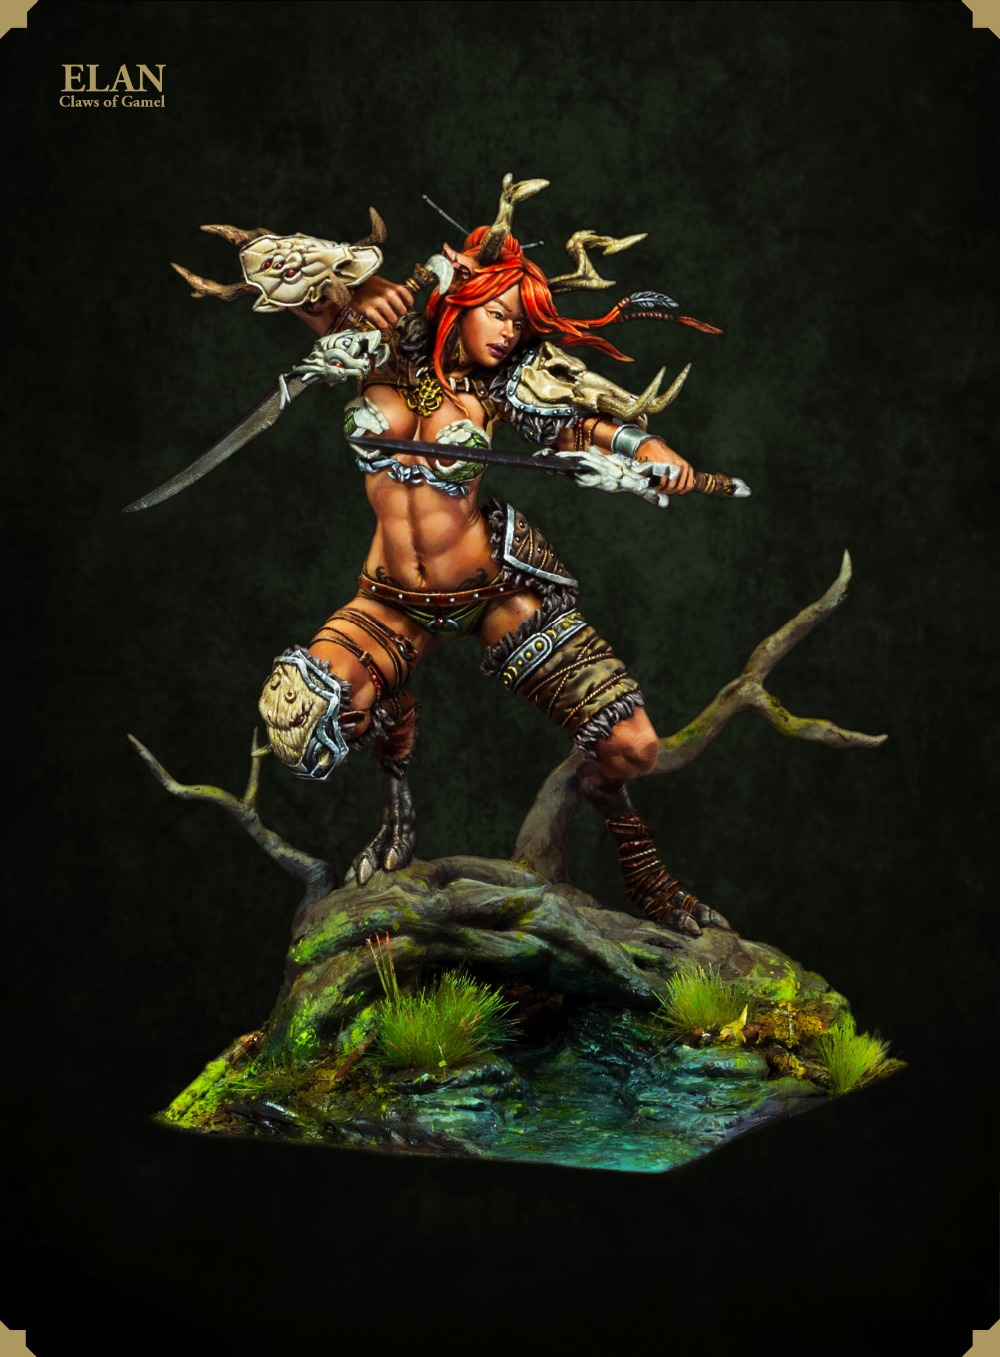 1/24 75mm Fantasy ELAN Claws Of Gamehl 75mm  Toy Resin Model Miniature Kit Unassembly Unpainted